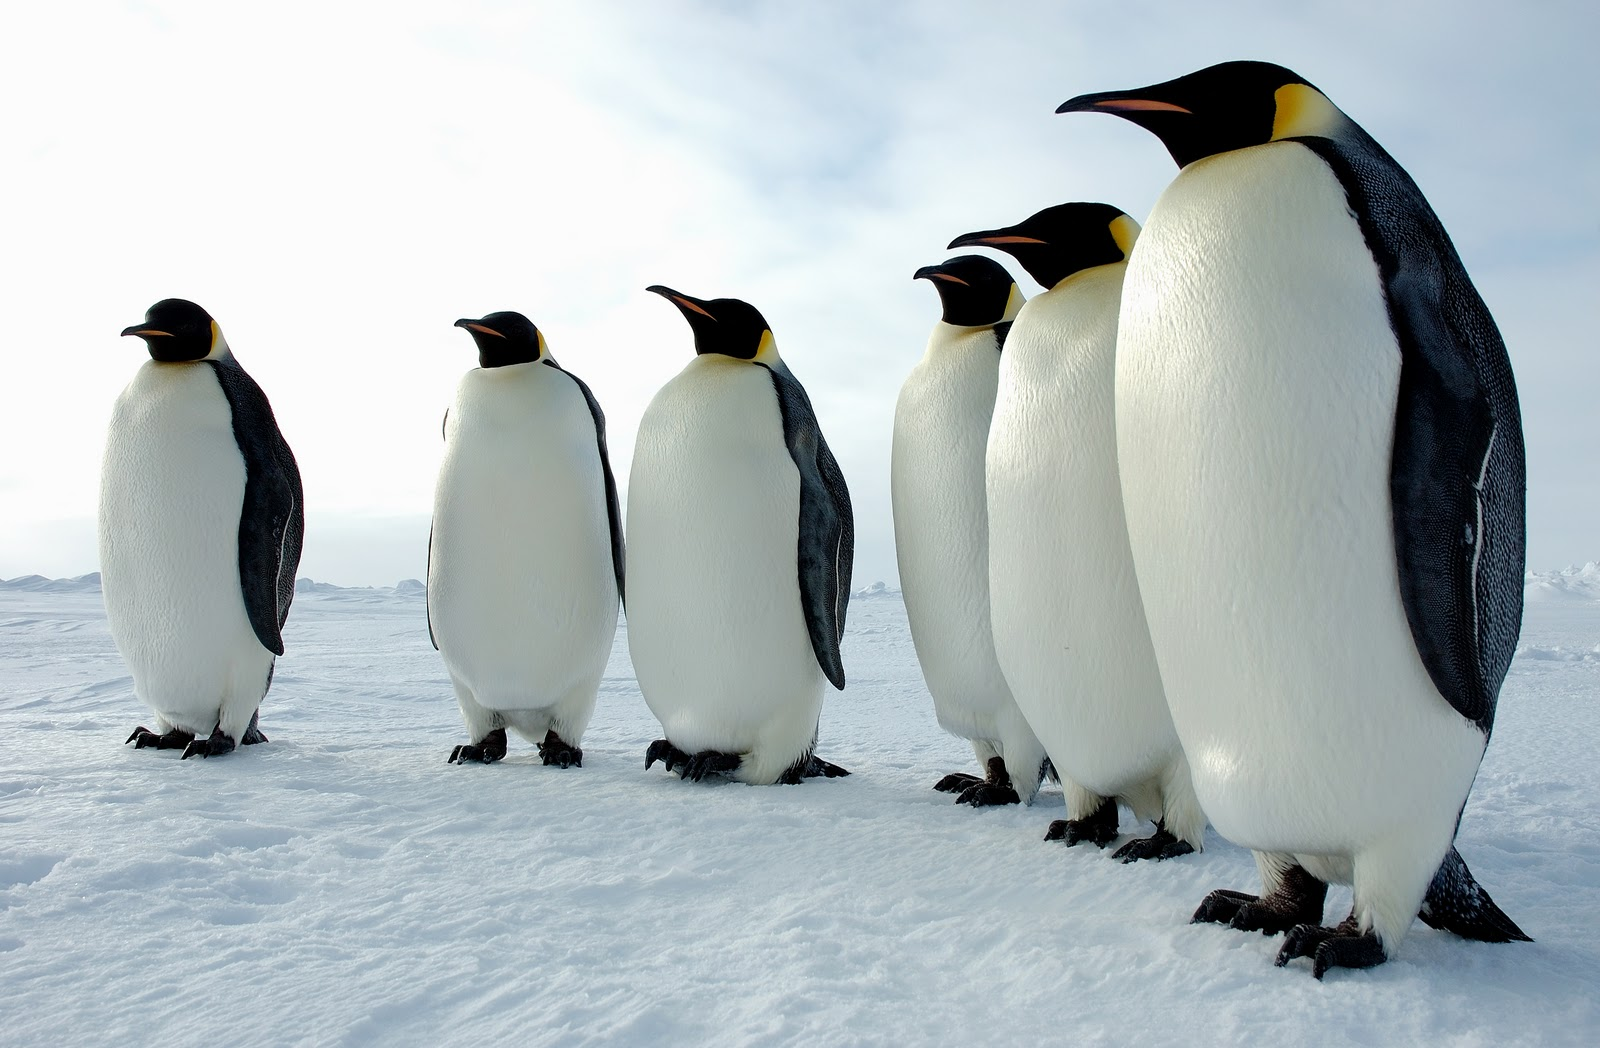 penguinsworldcom  Penguin Facts and Information